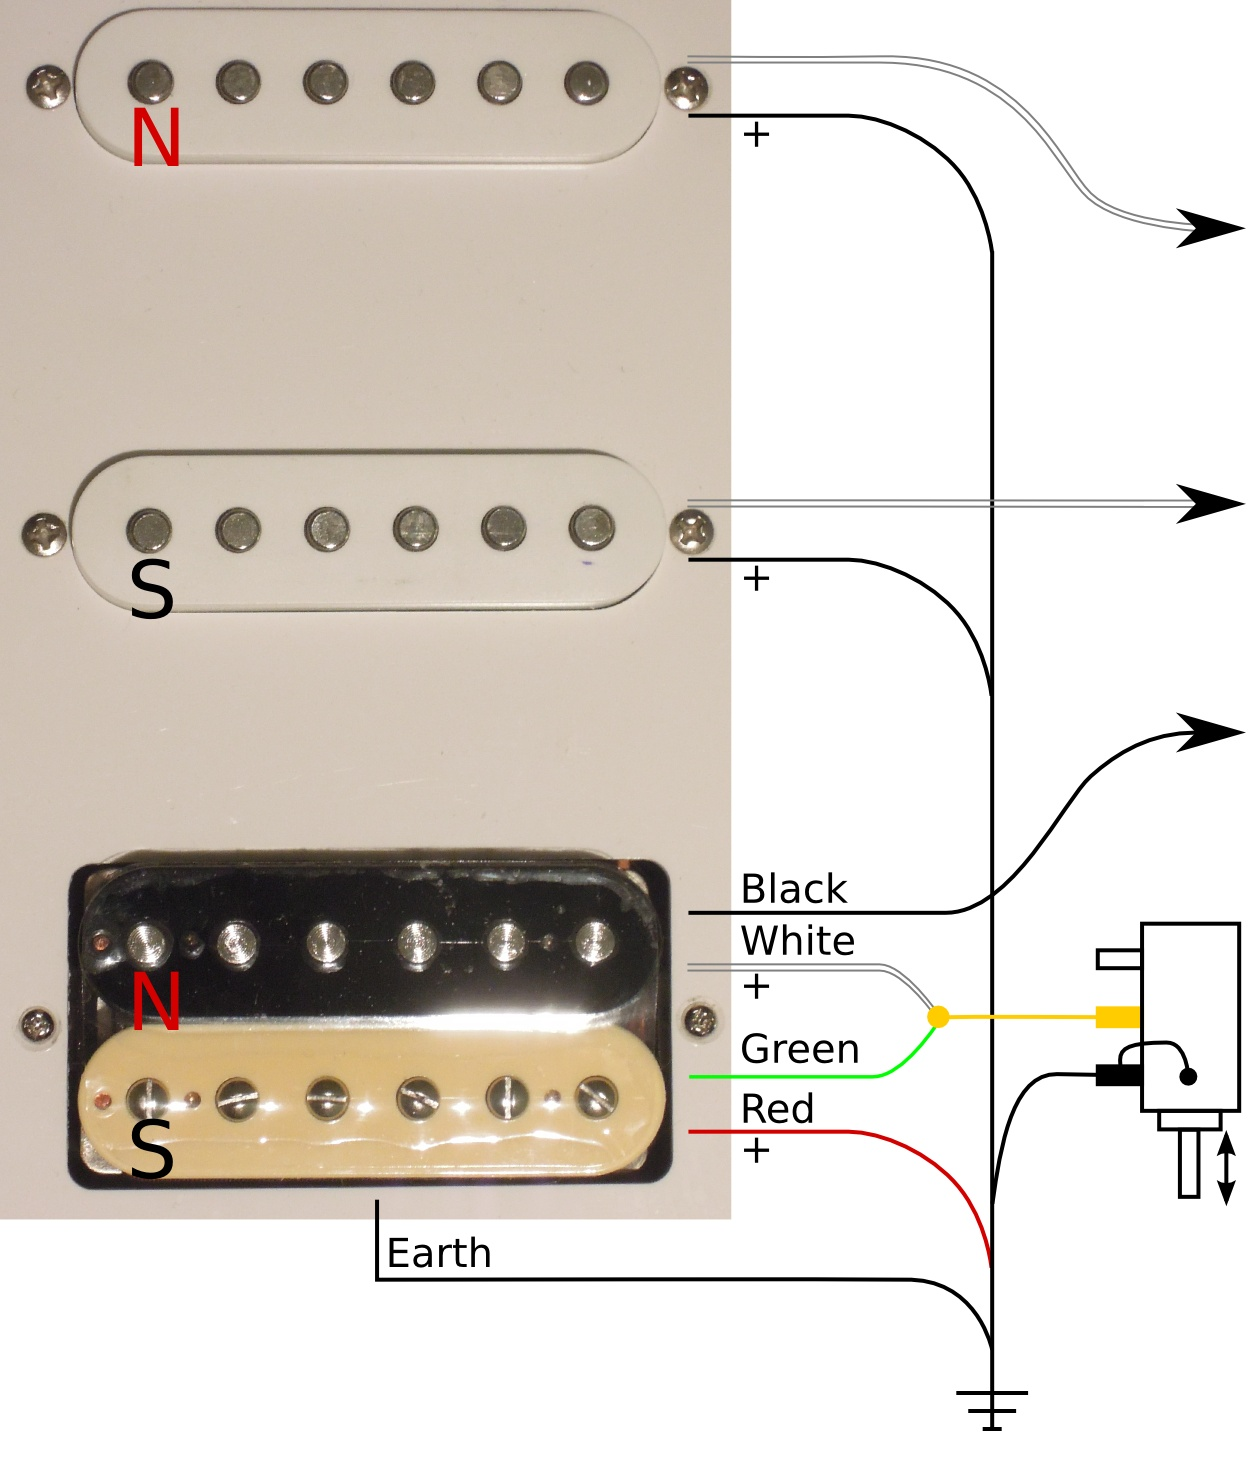 Yamaha Pacifica Wiring Diagram 30 Images Bass Guitar Electric Penguinland Iron In The Blood Wiring2 At